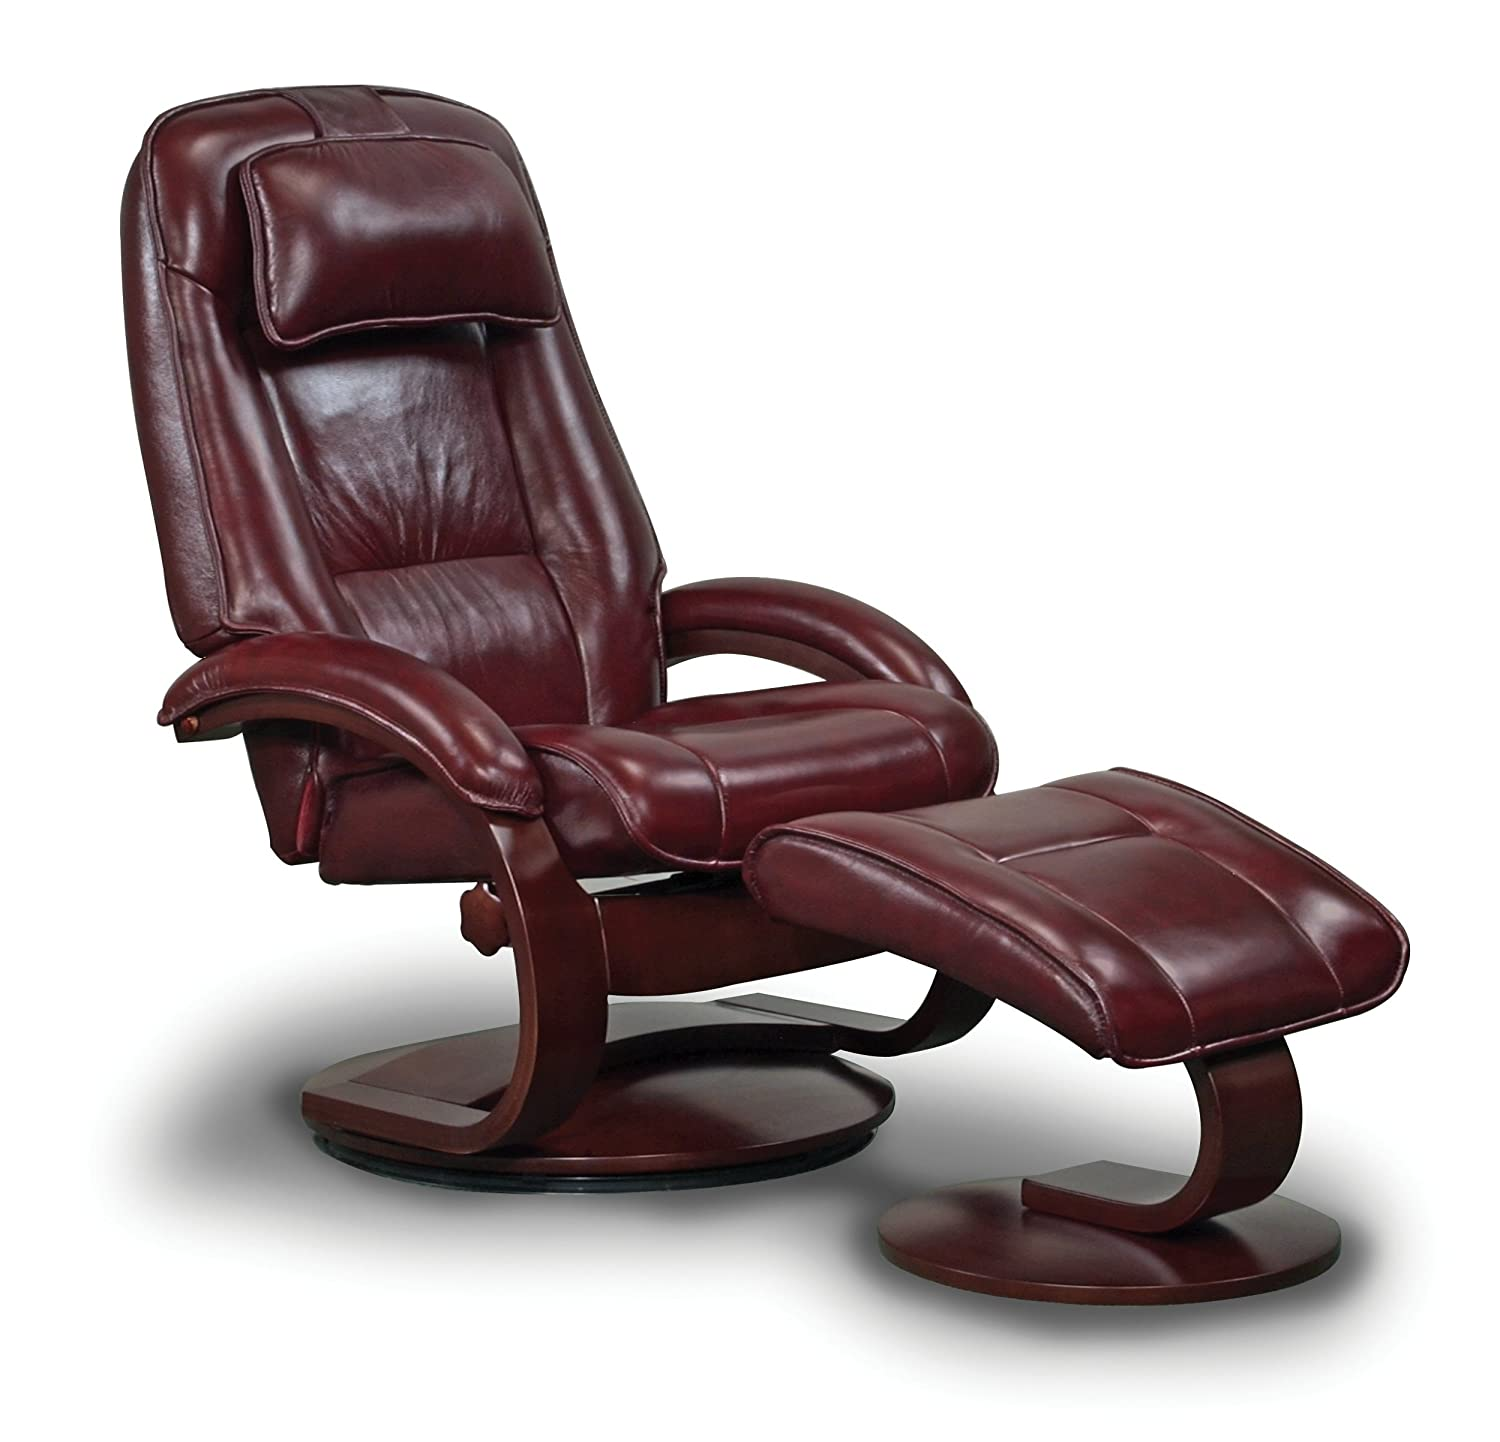 amazon com mac motion oslo collection recliner with matching